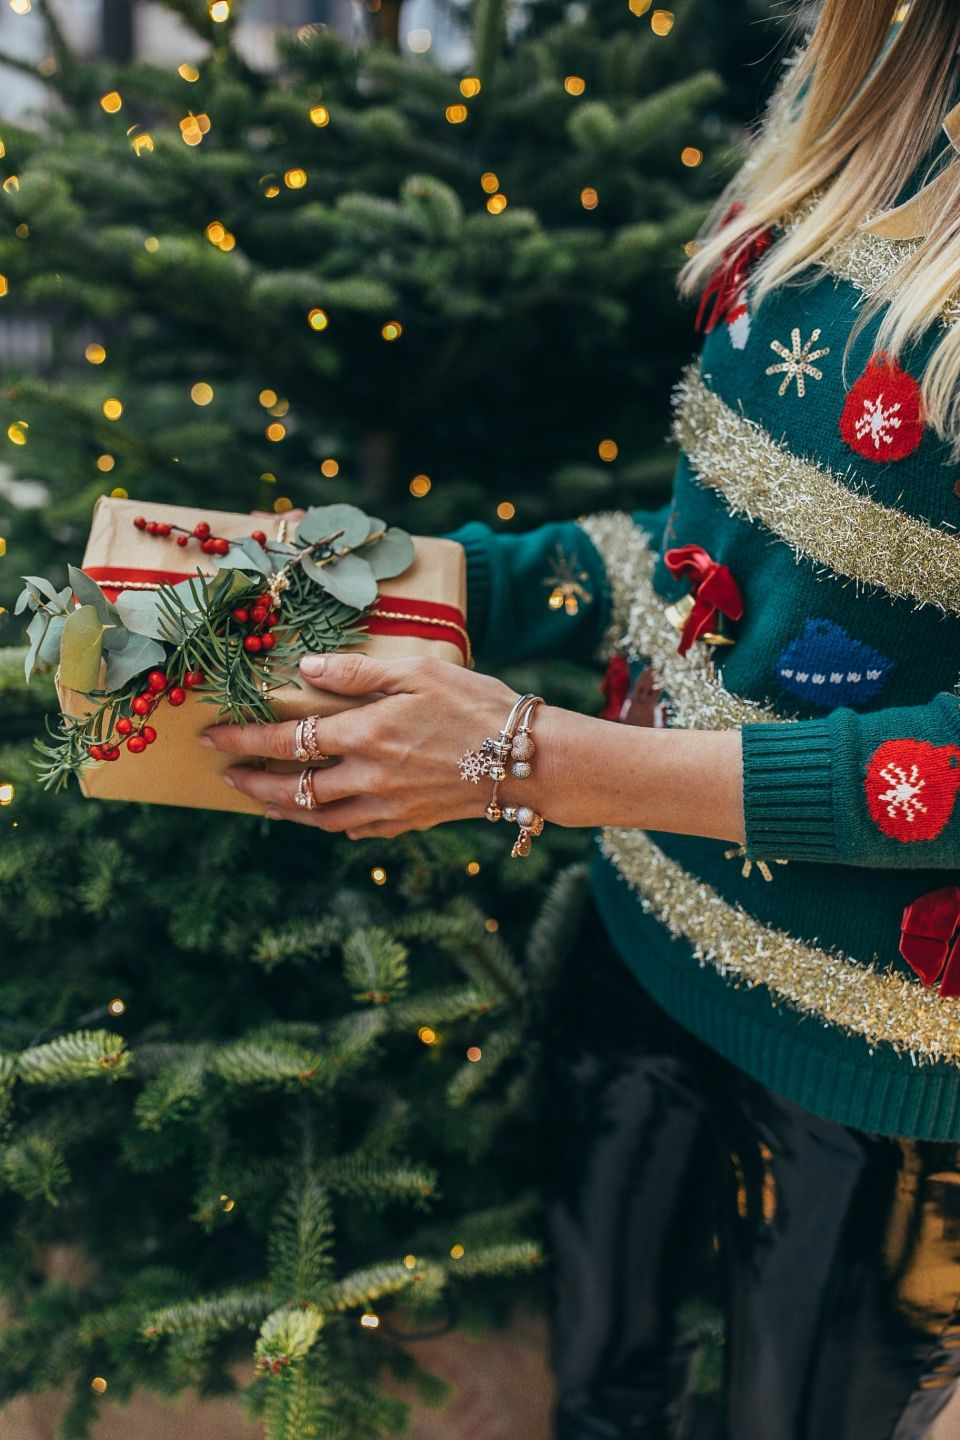 In love with cute, funny and cosy sweaters for christmas. #christmas #christmaslook #christmassweater #xmassweater #cosyknit #xmastime #winterfashion #fashion #blogger #bloggerin #fashionblogger #gift #xmasgift #christmasgift #outfitinspiration #vinyl #vinylpants #leatherpants #jewellery #schmuck #details #giftguide